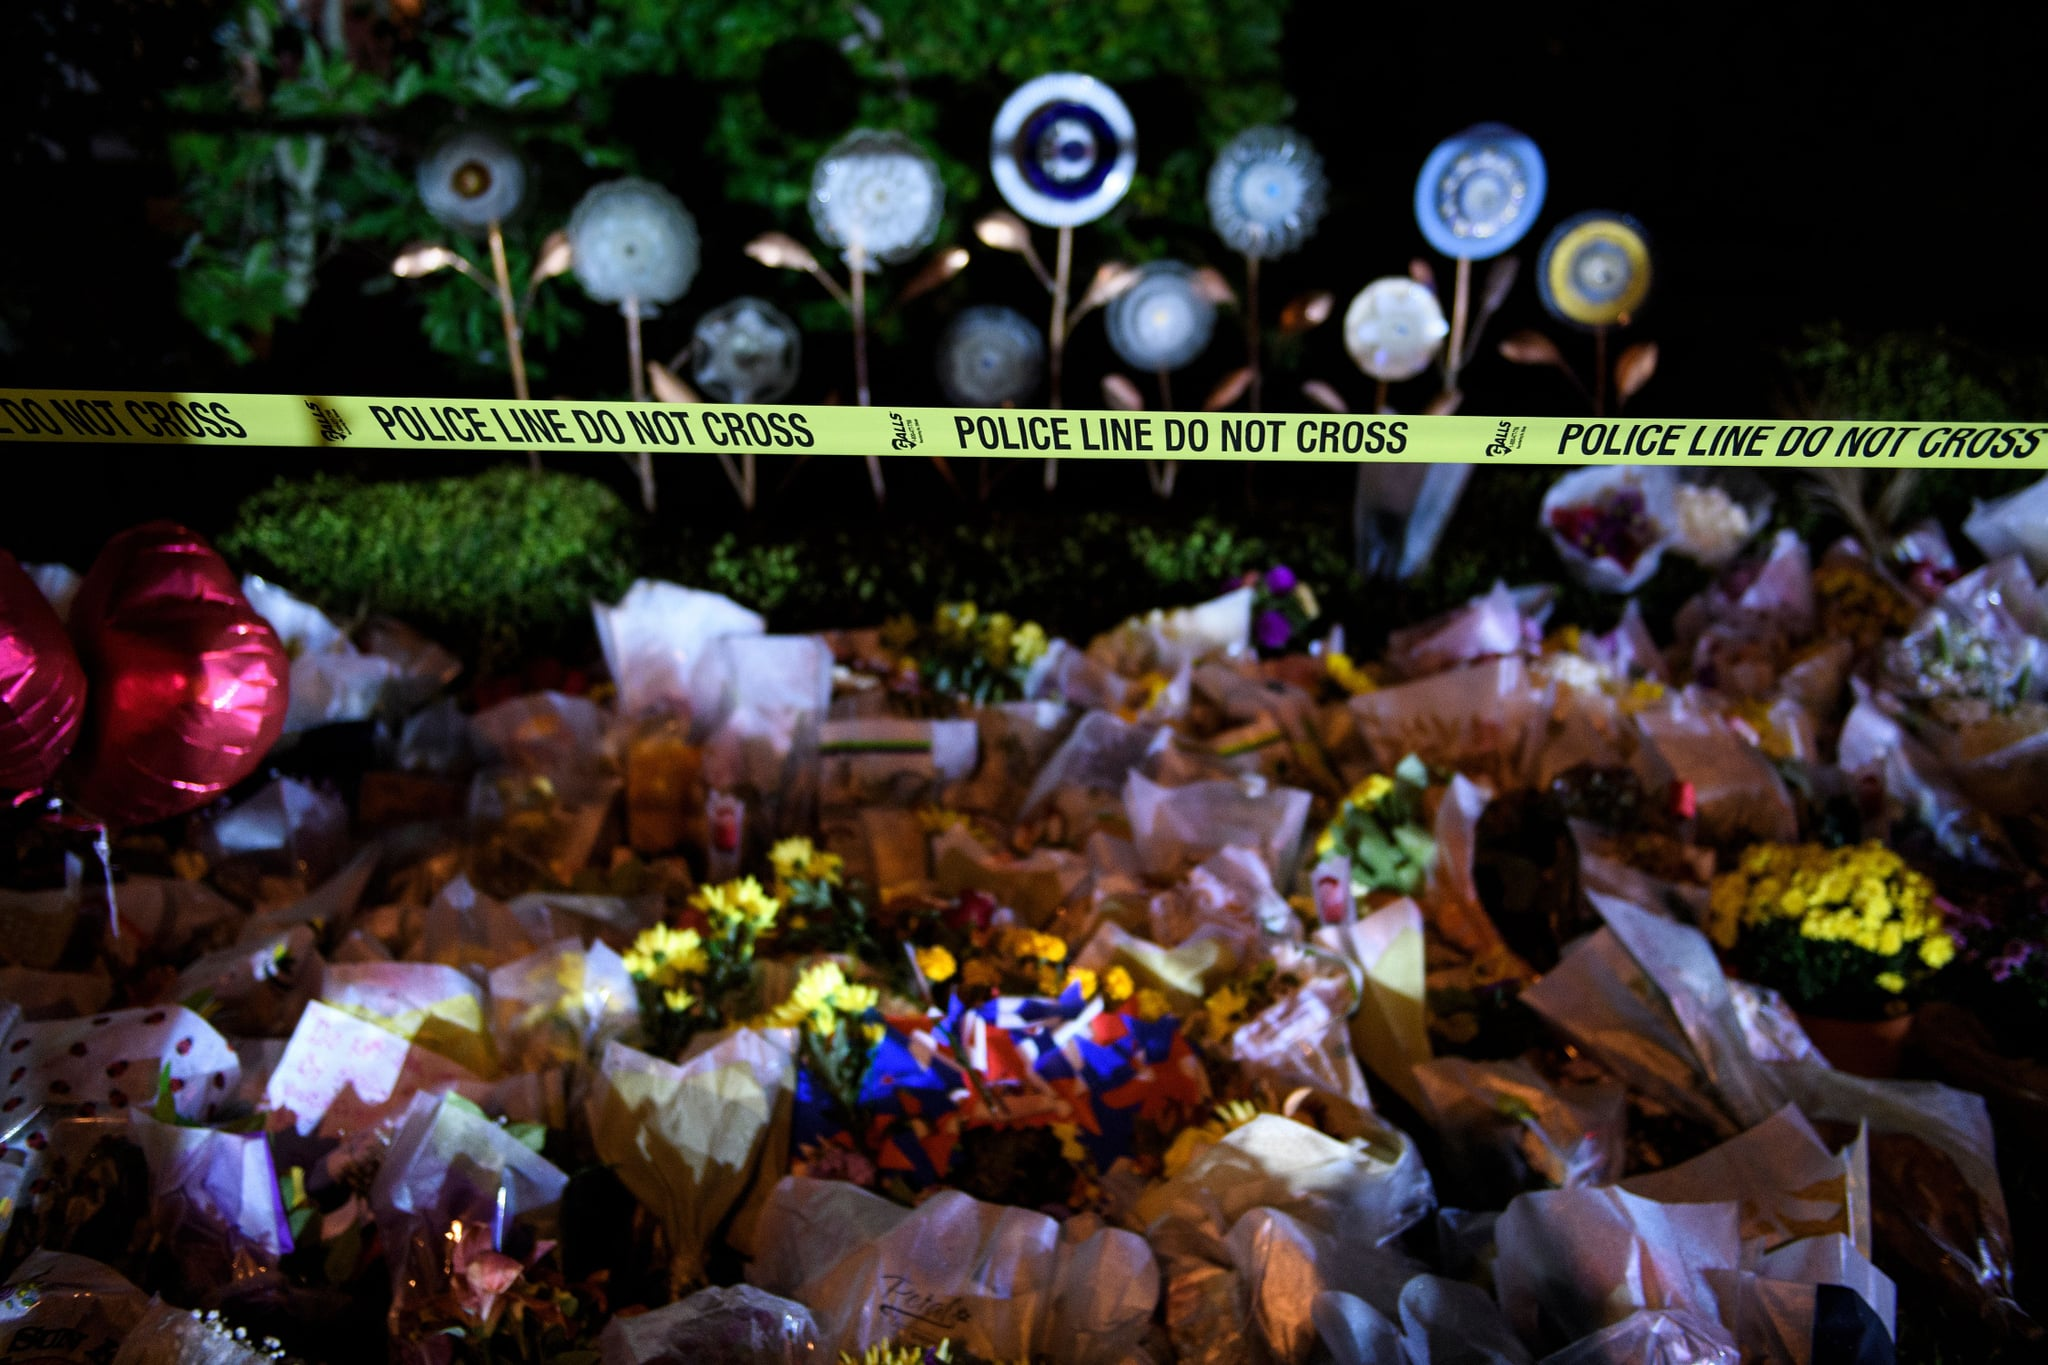 TOPSHOT - A makeshift memorial is seen outside the Tree of Life Congregation October 30, 2018 in Pittsburgh, Pennsylvania. - US President Donald Trump and his wife Melania will visit Pittsburgh on October 30, 2018 to show support after a gunman killed 11 people in a massacre at the synagogue on October 27, 2018. (Photo by Brendan Smialowski / AFP)        (Photo credit should read BRENDAN SMIALOWSKI/AFP/Getty Images)